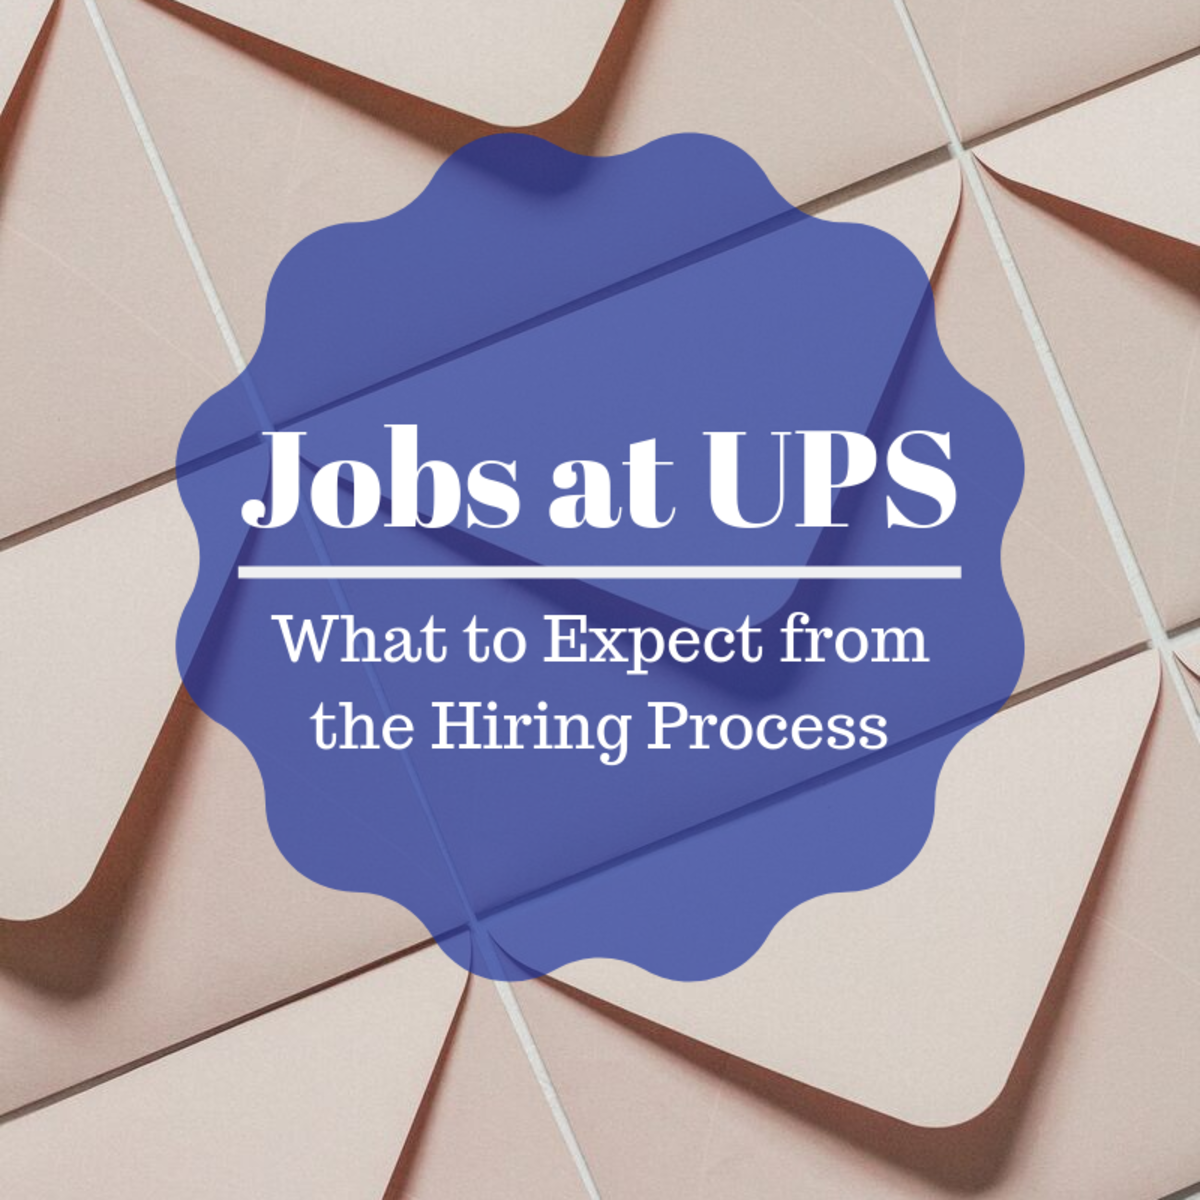 The United Parcel Service is a great employer. Learn how to apply and what to expect from the hiring process.